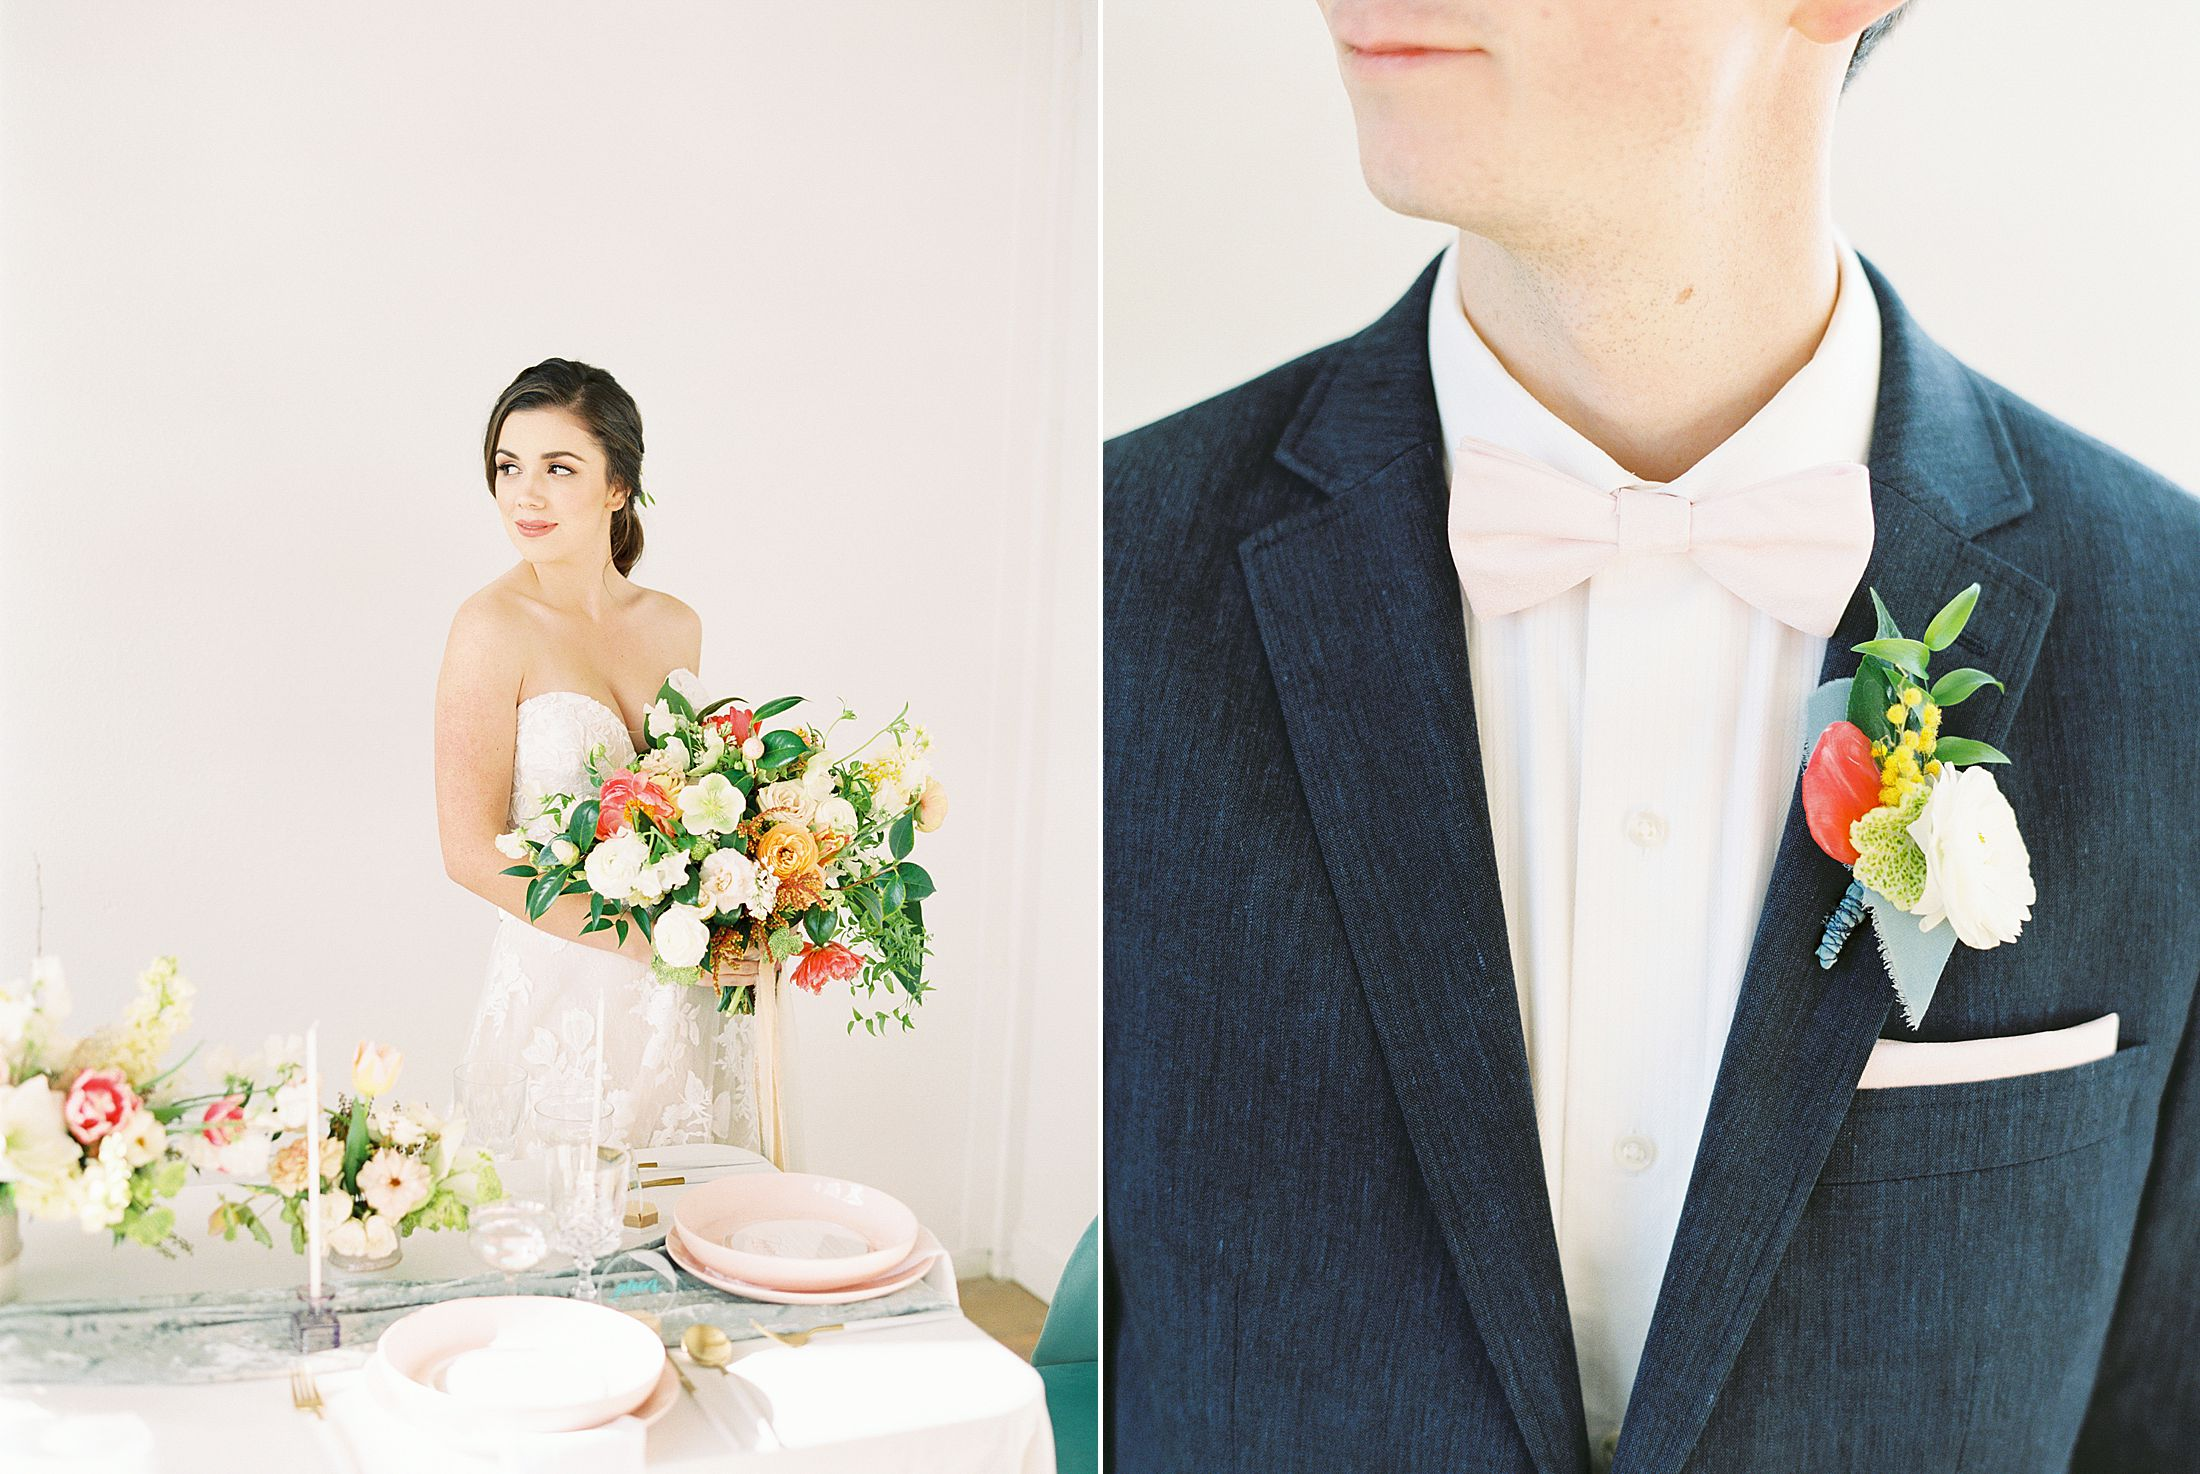 Bay Area Spring Wedding Inspiration - Ashley Baumgartner - Inspired By This - Party Crush Studio and Lens of Lenox Videography - Bay Area Wedding Photography_0025.jpg